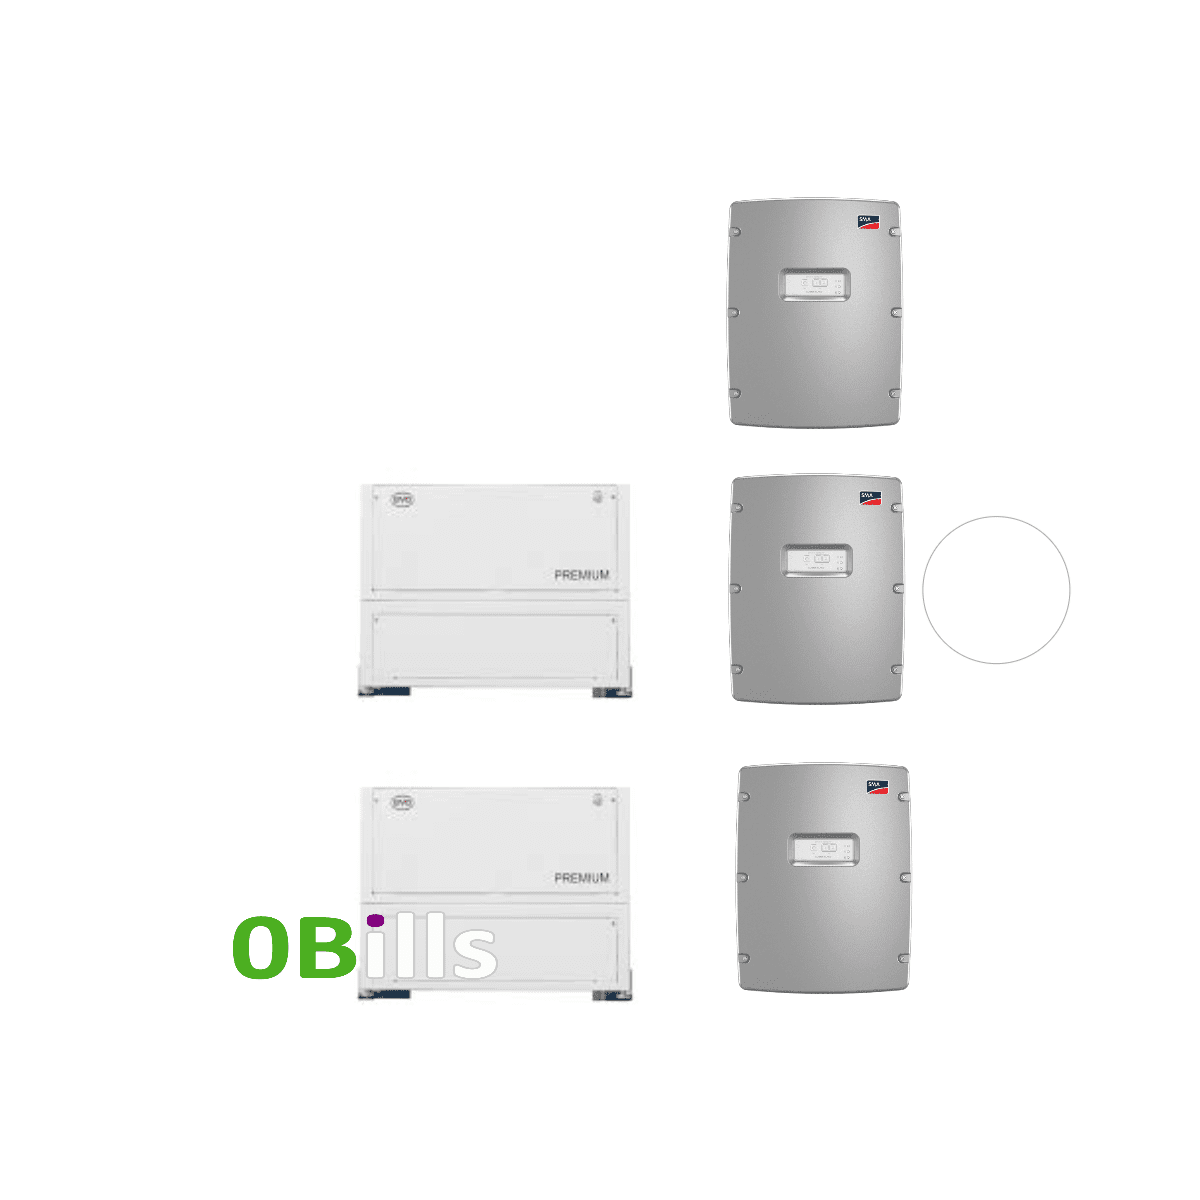 BYD LVL 30.72kWh Lithium-Ion Solar Battery Storage System